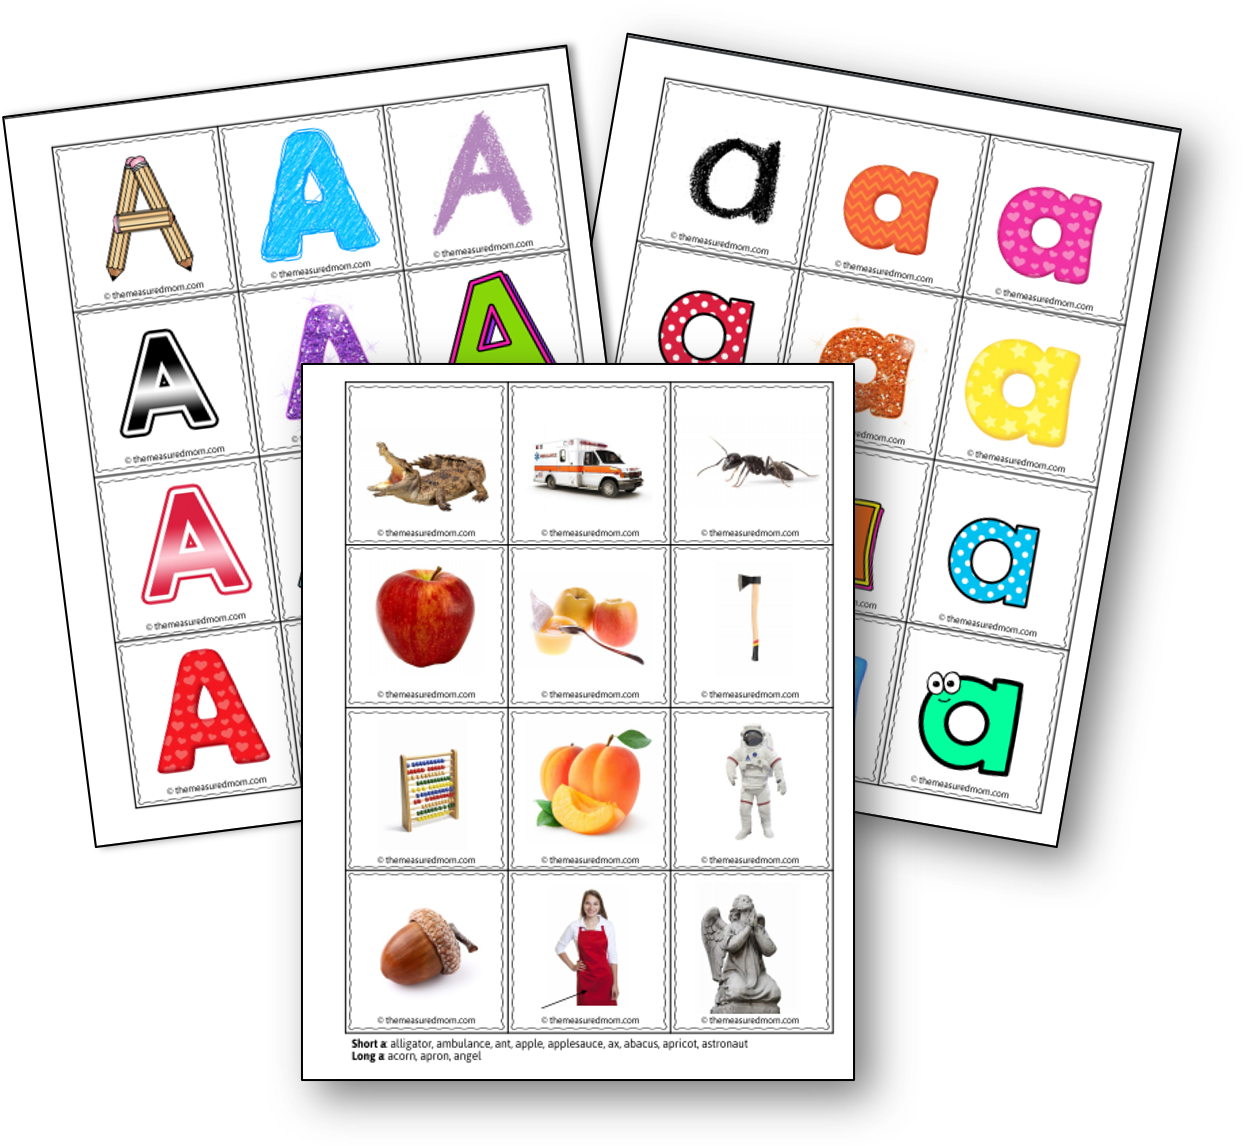 Letter A Activities For 2 Year Olds Alphabet Activities Preschool Alphabet Activities Toddler Alphabet Activities [ 1146 x 1247 Pixel ]